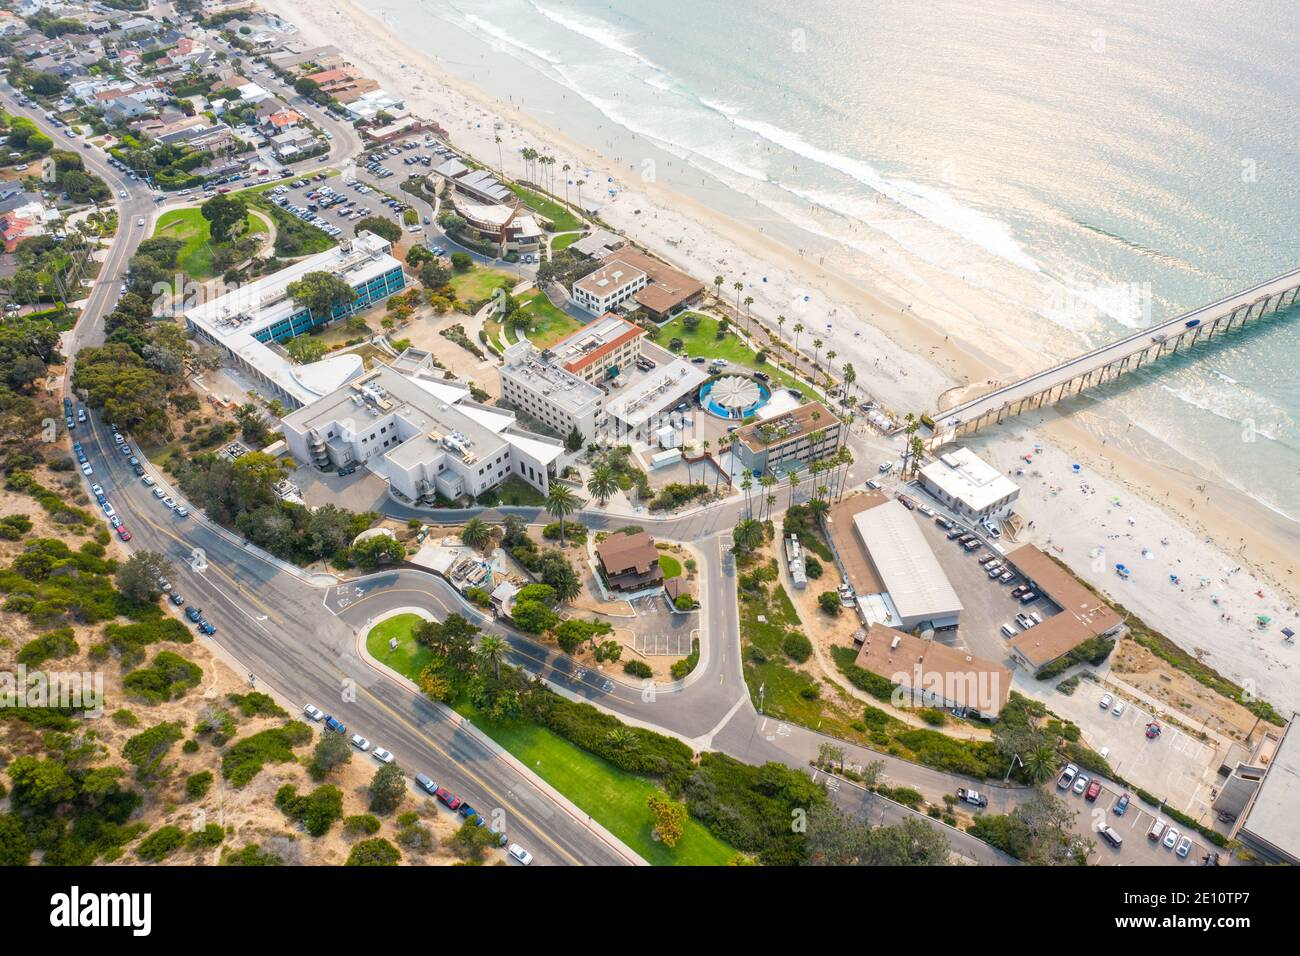 Scripps Institution of Oceanography, San Diego, CA, USA Stock Photo